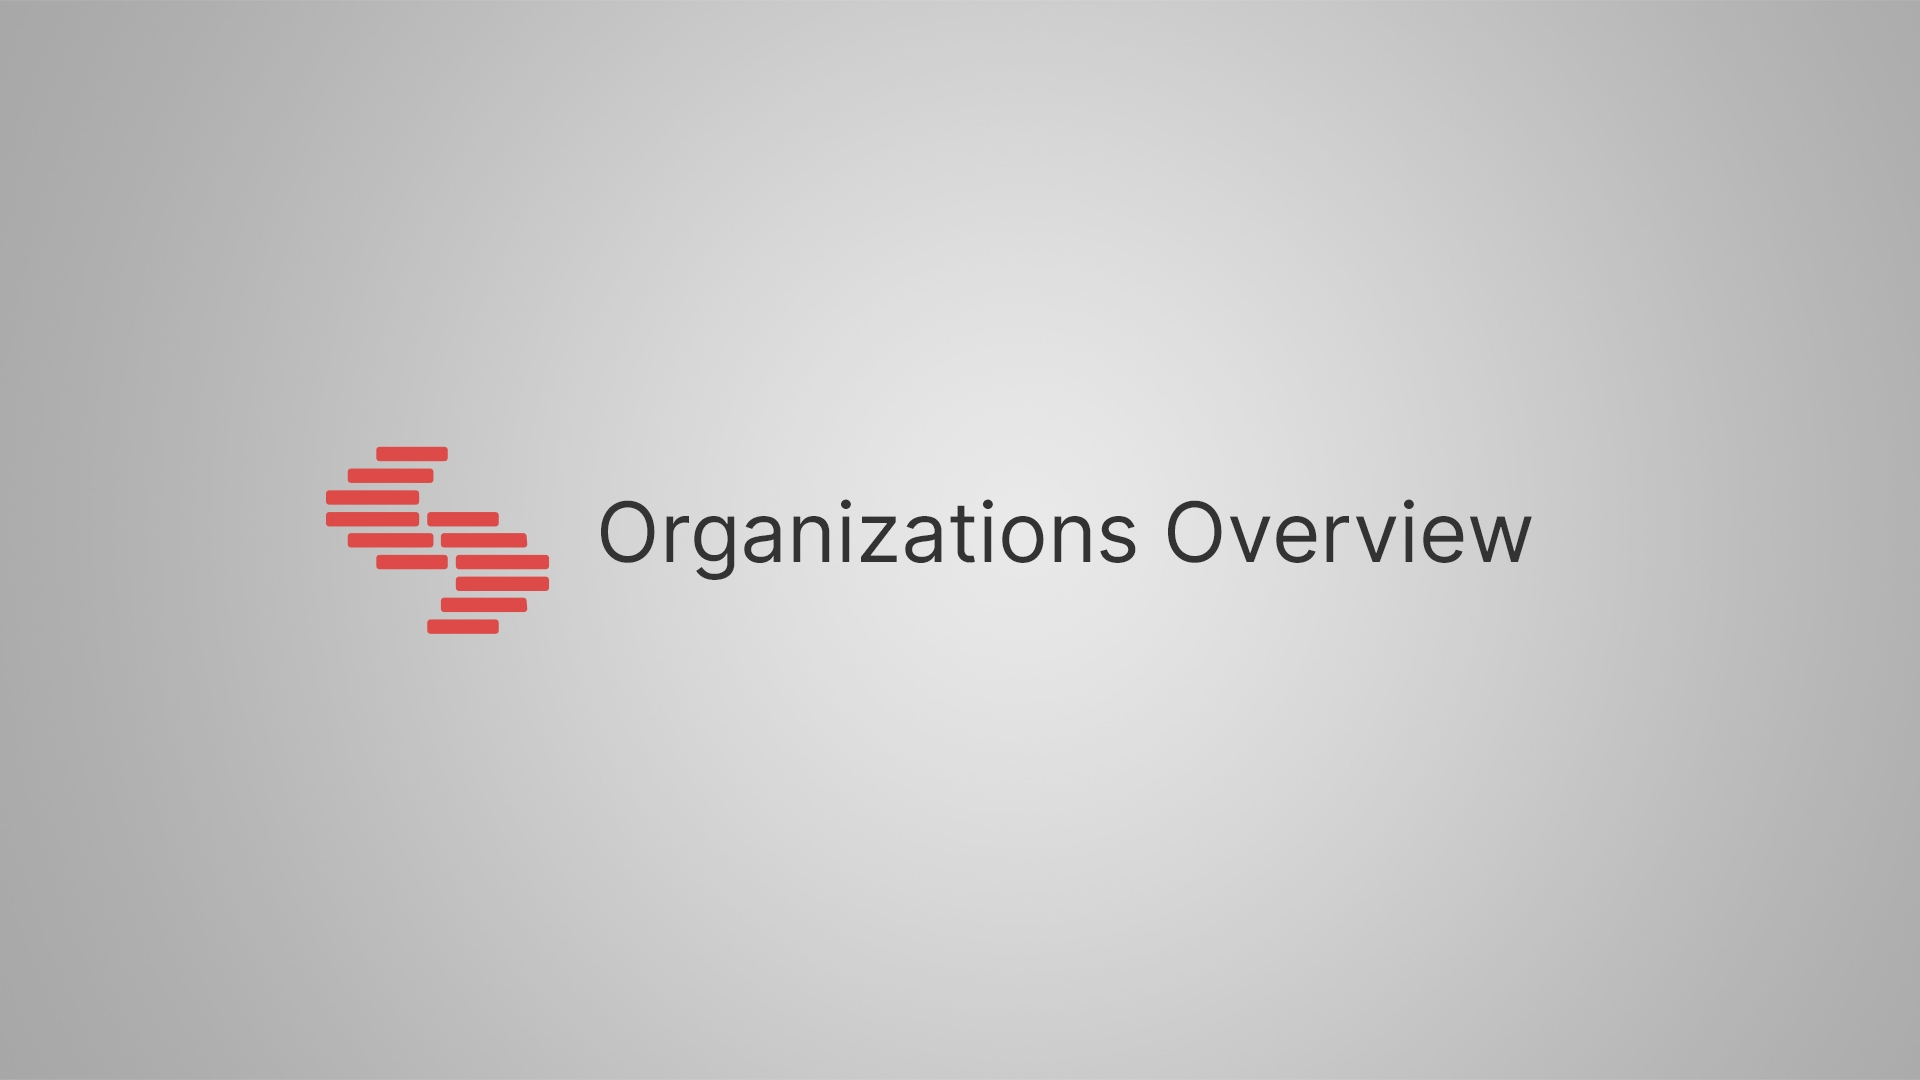 About Organizations